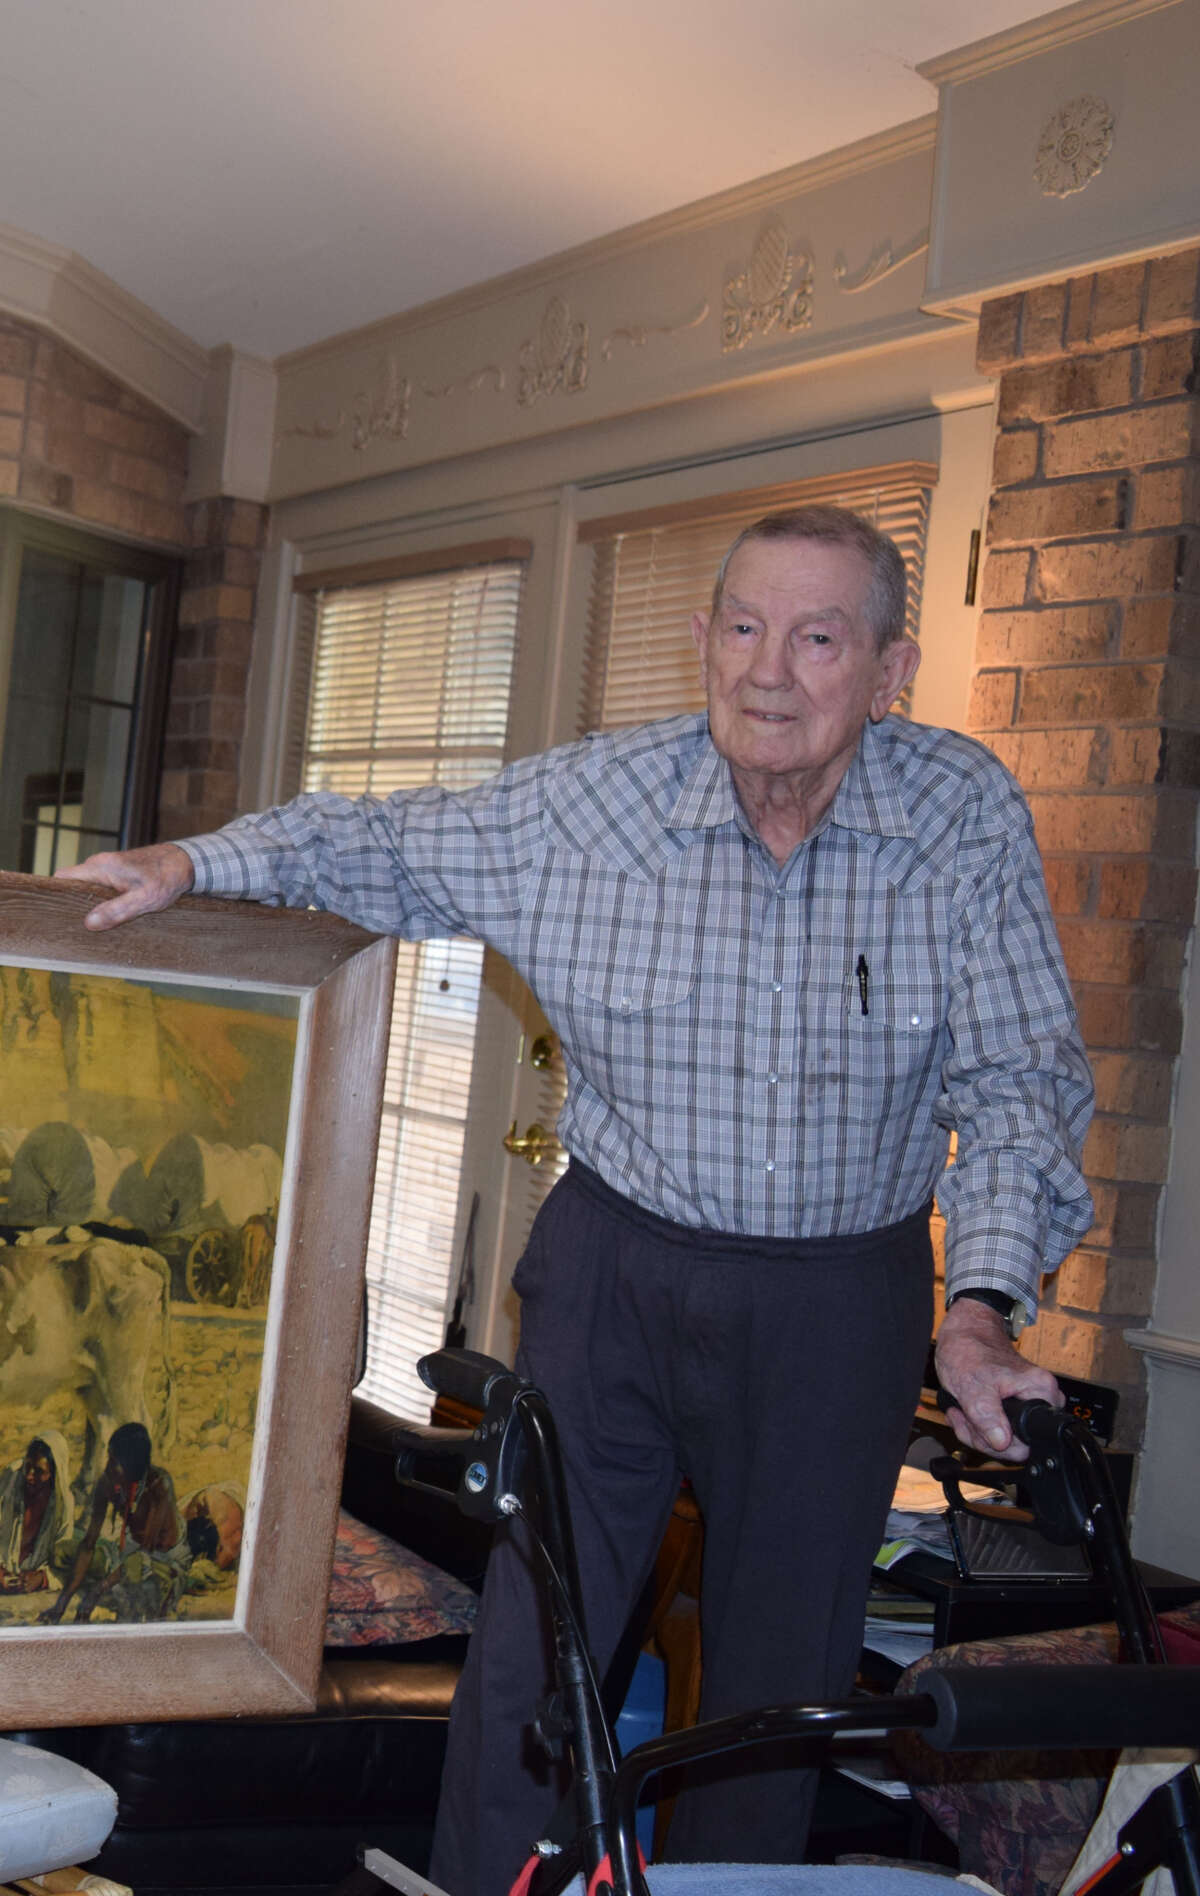 Harley Redin stands by a painting donated to the Conrad Lofts. (April 2019)